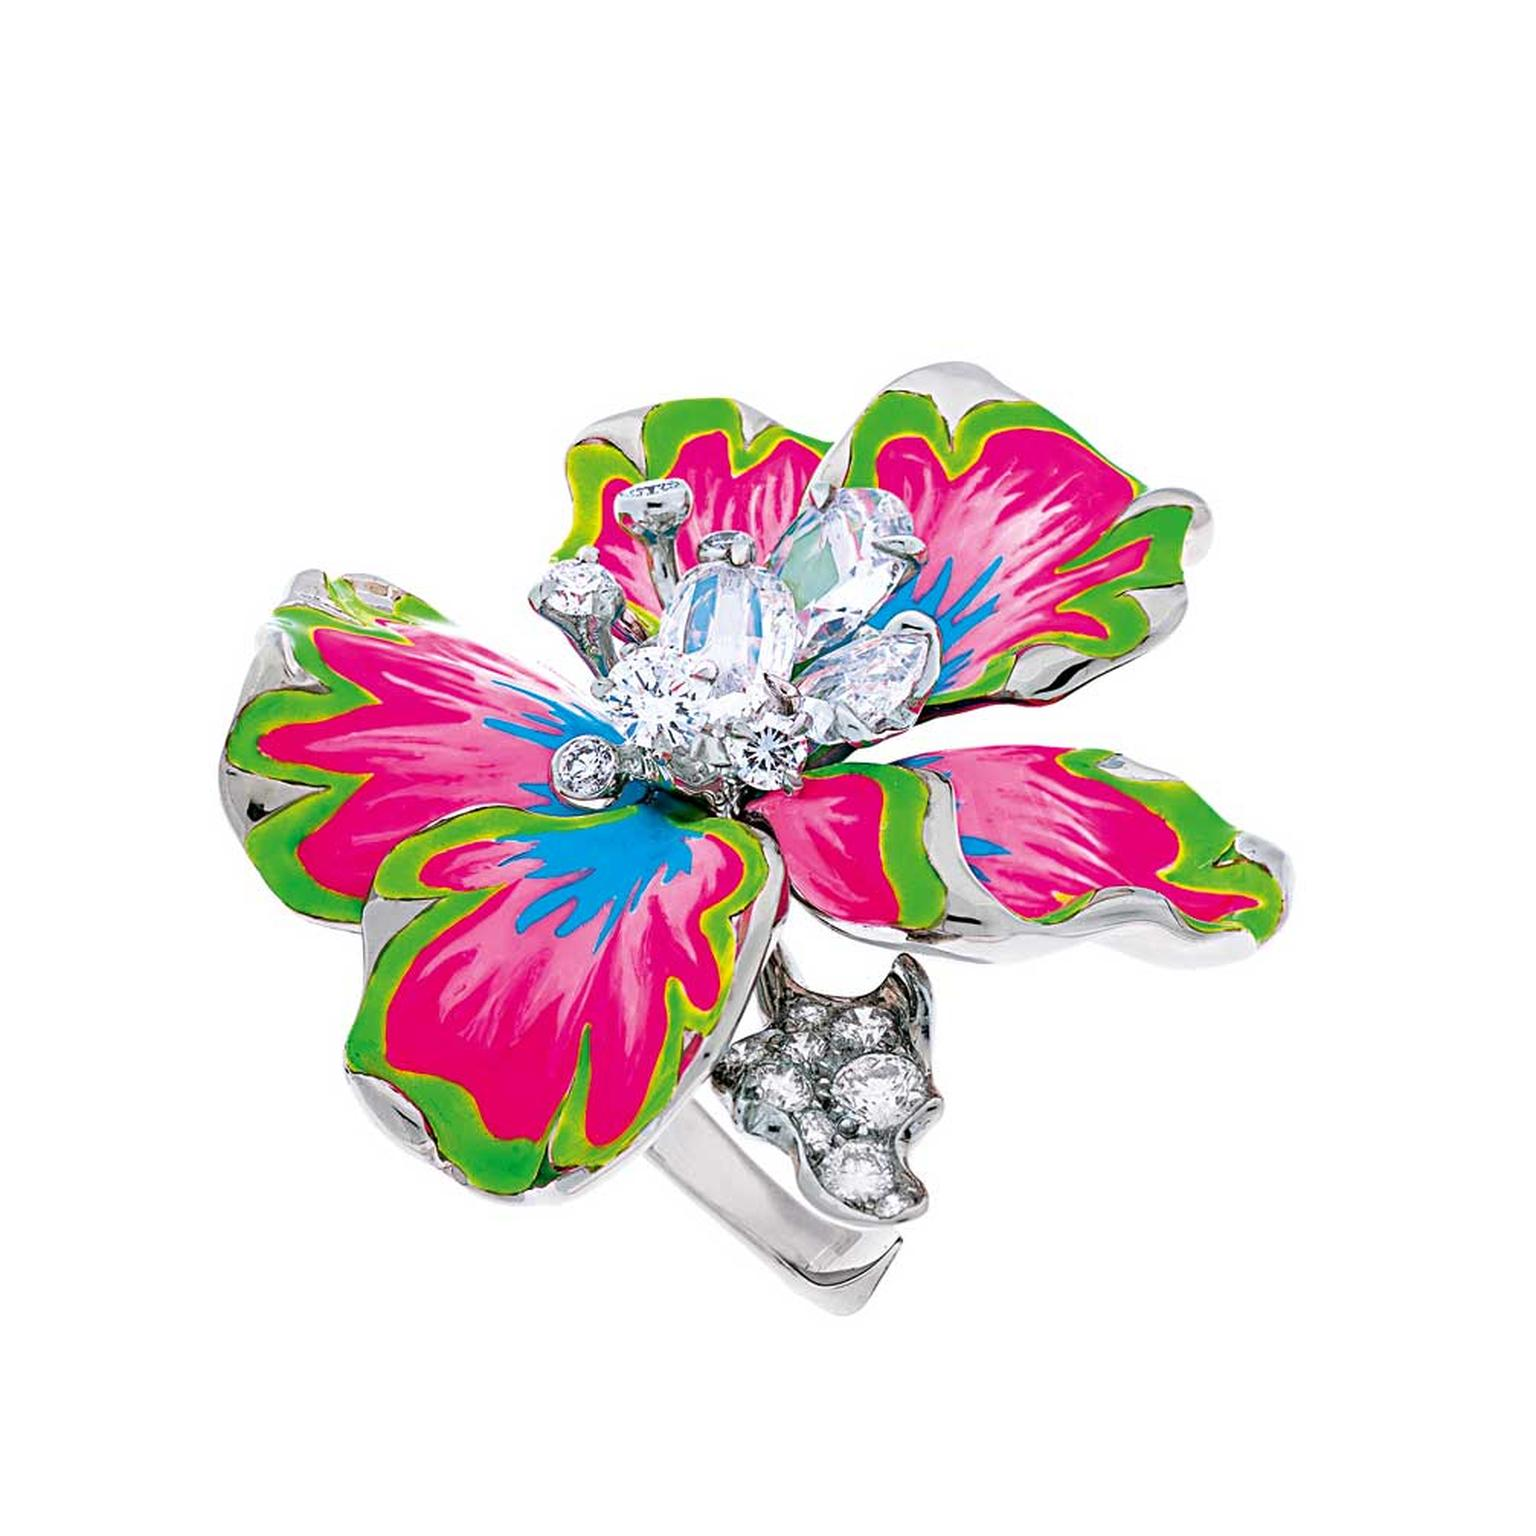 Dior-Milly-Carnivora-lacquer-and-diamond-white-gold-flower-ring